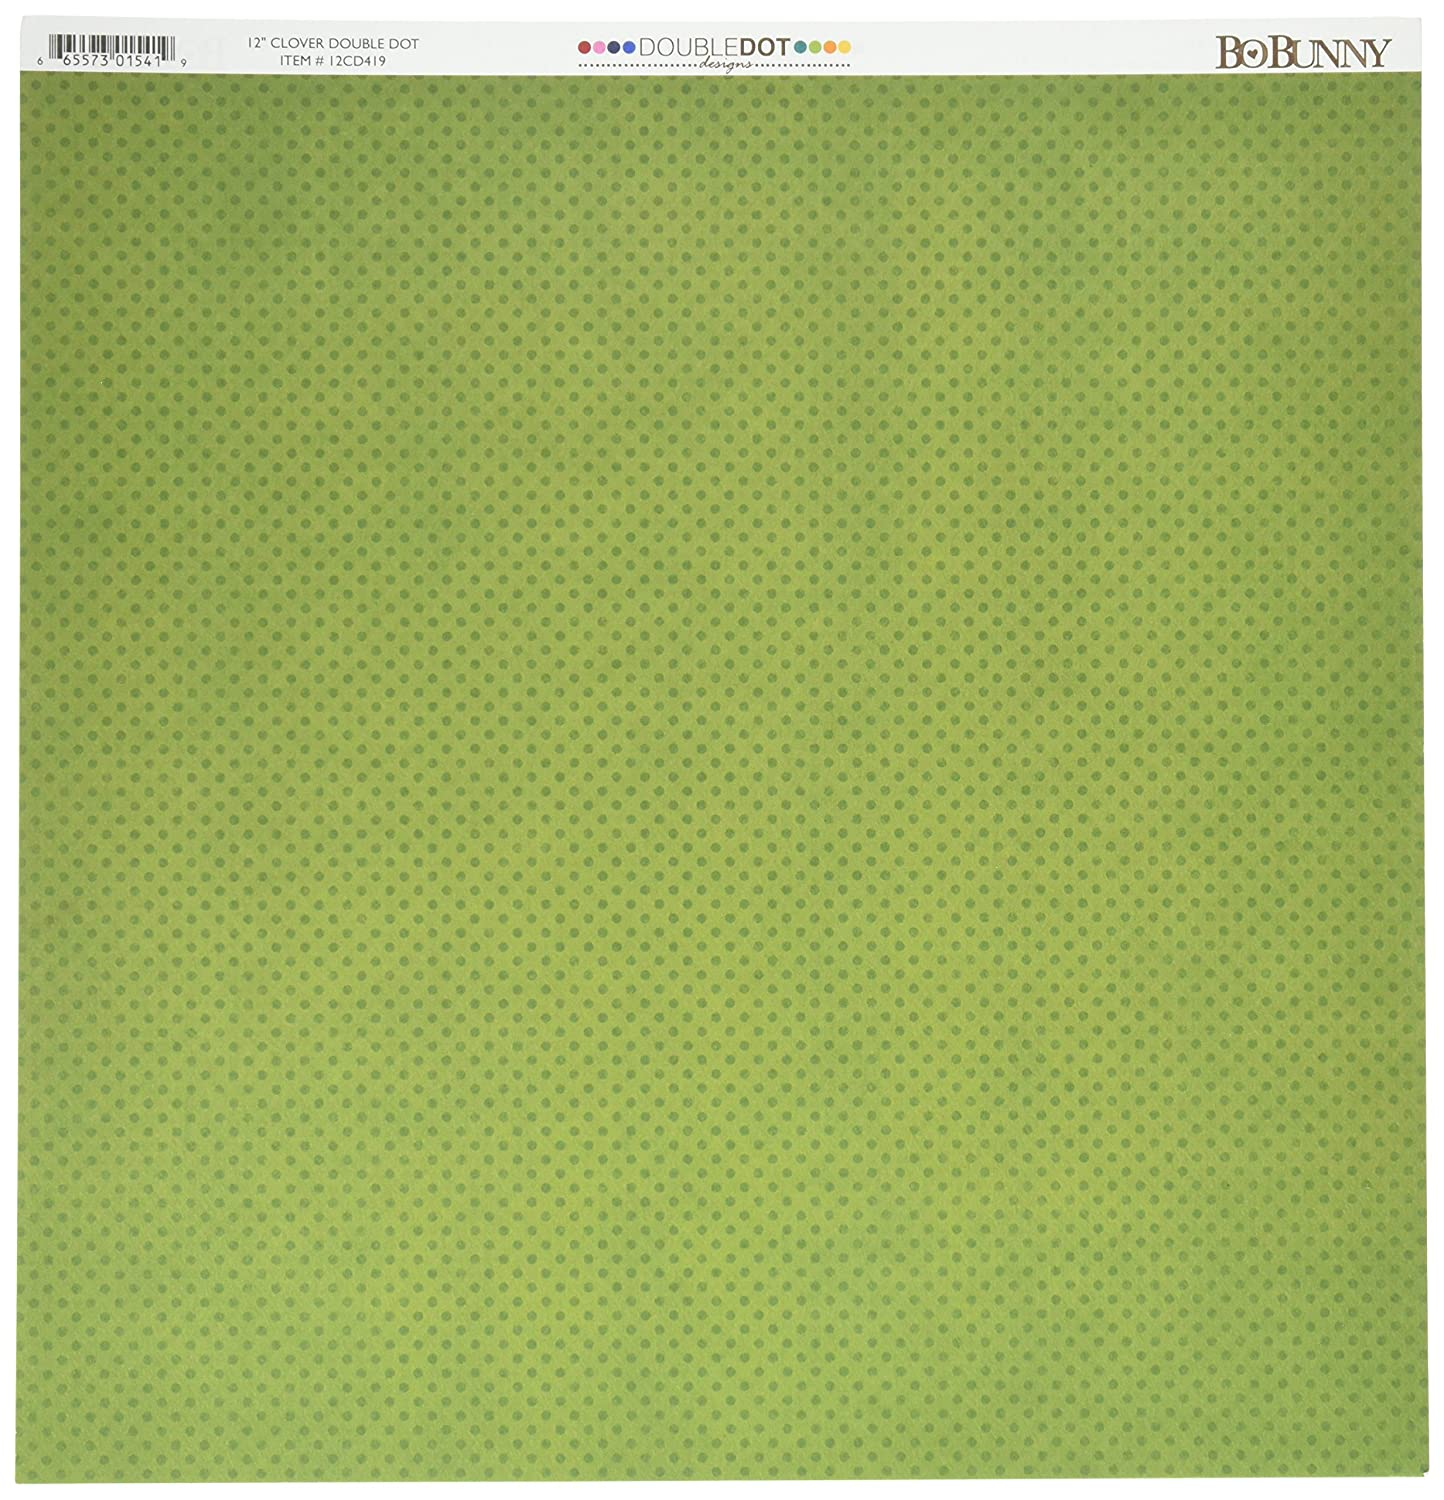 Double Dot Double-Sided Textured Design Cardstock 12X12-Clover- 25 Pack by Bo Bunny B0019LSTJI